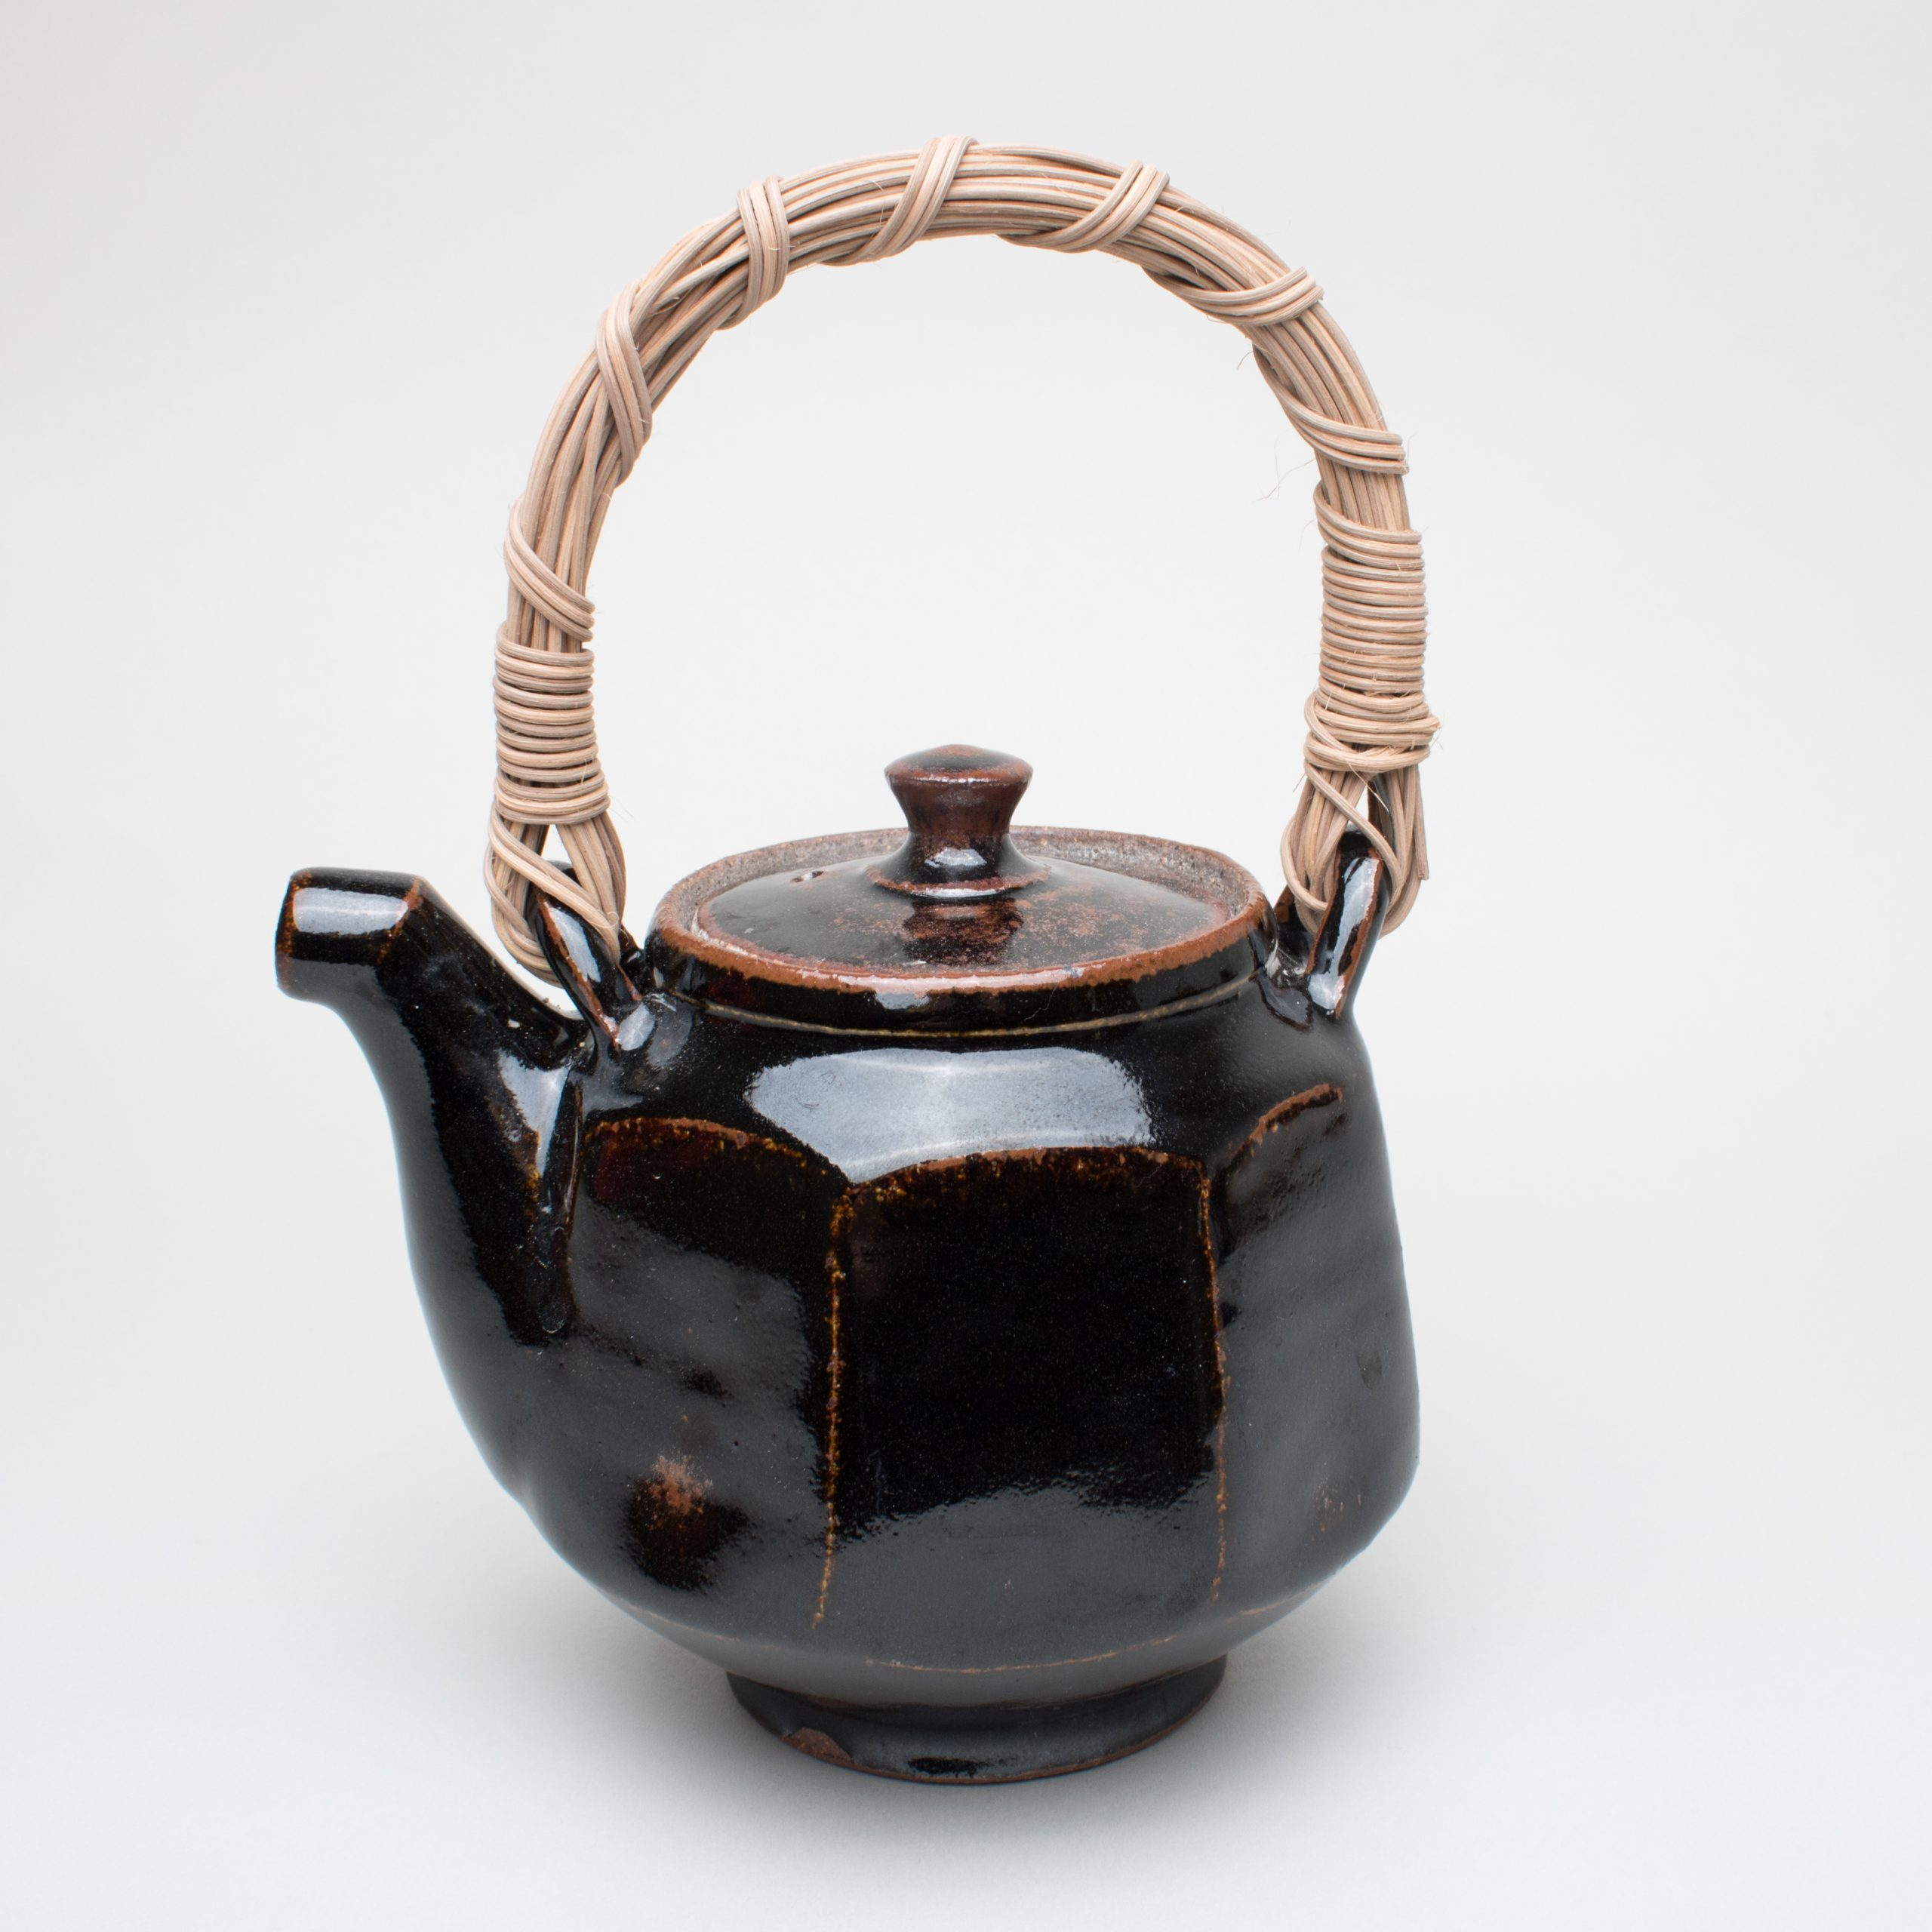 Faceted Teapot with Cane Handle